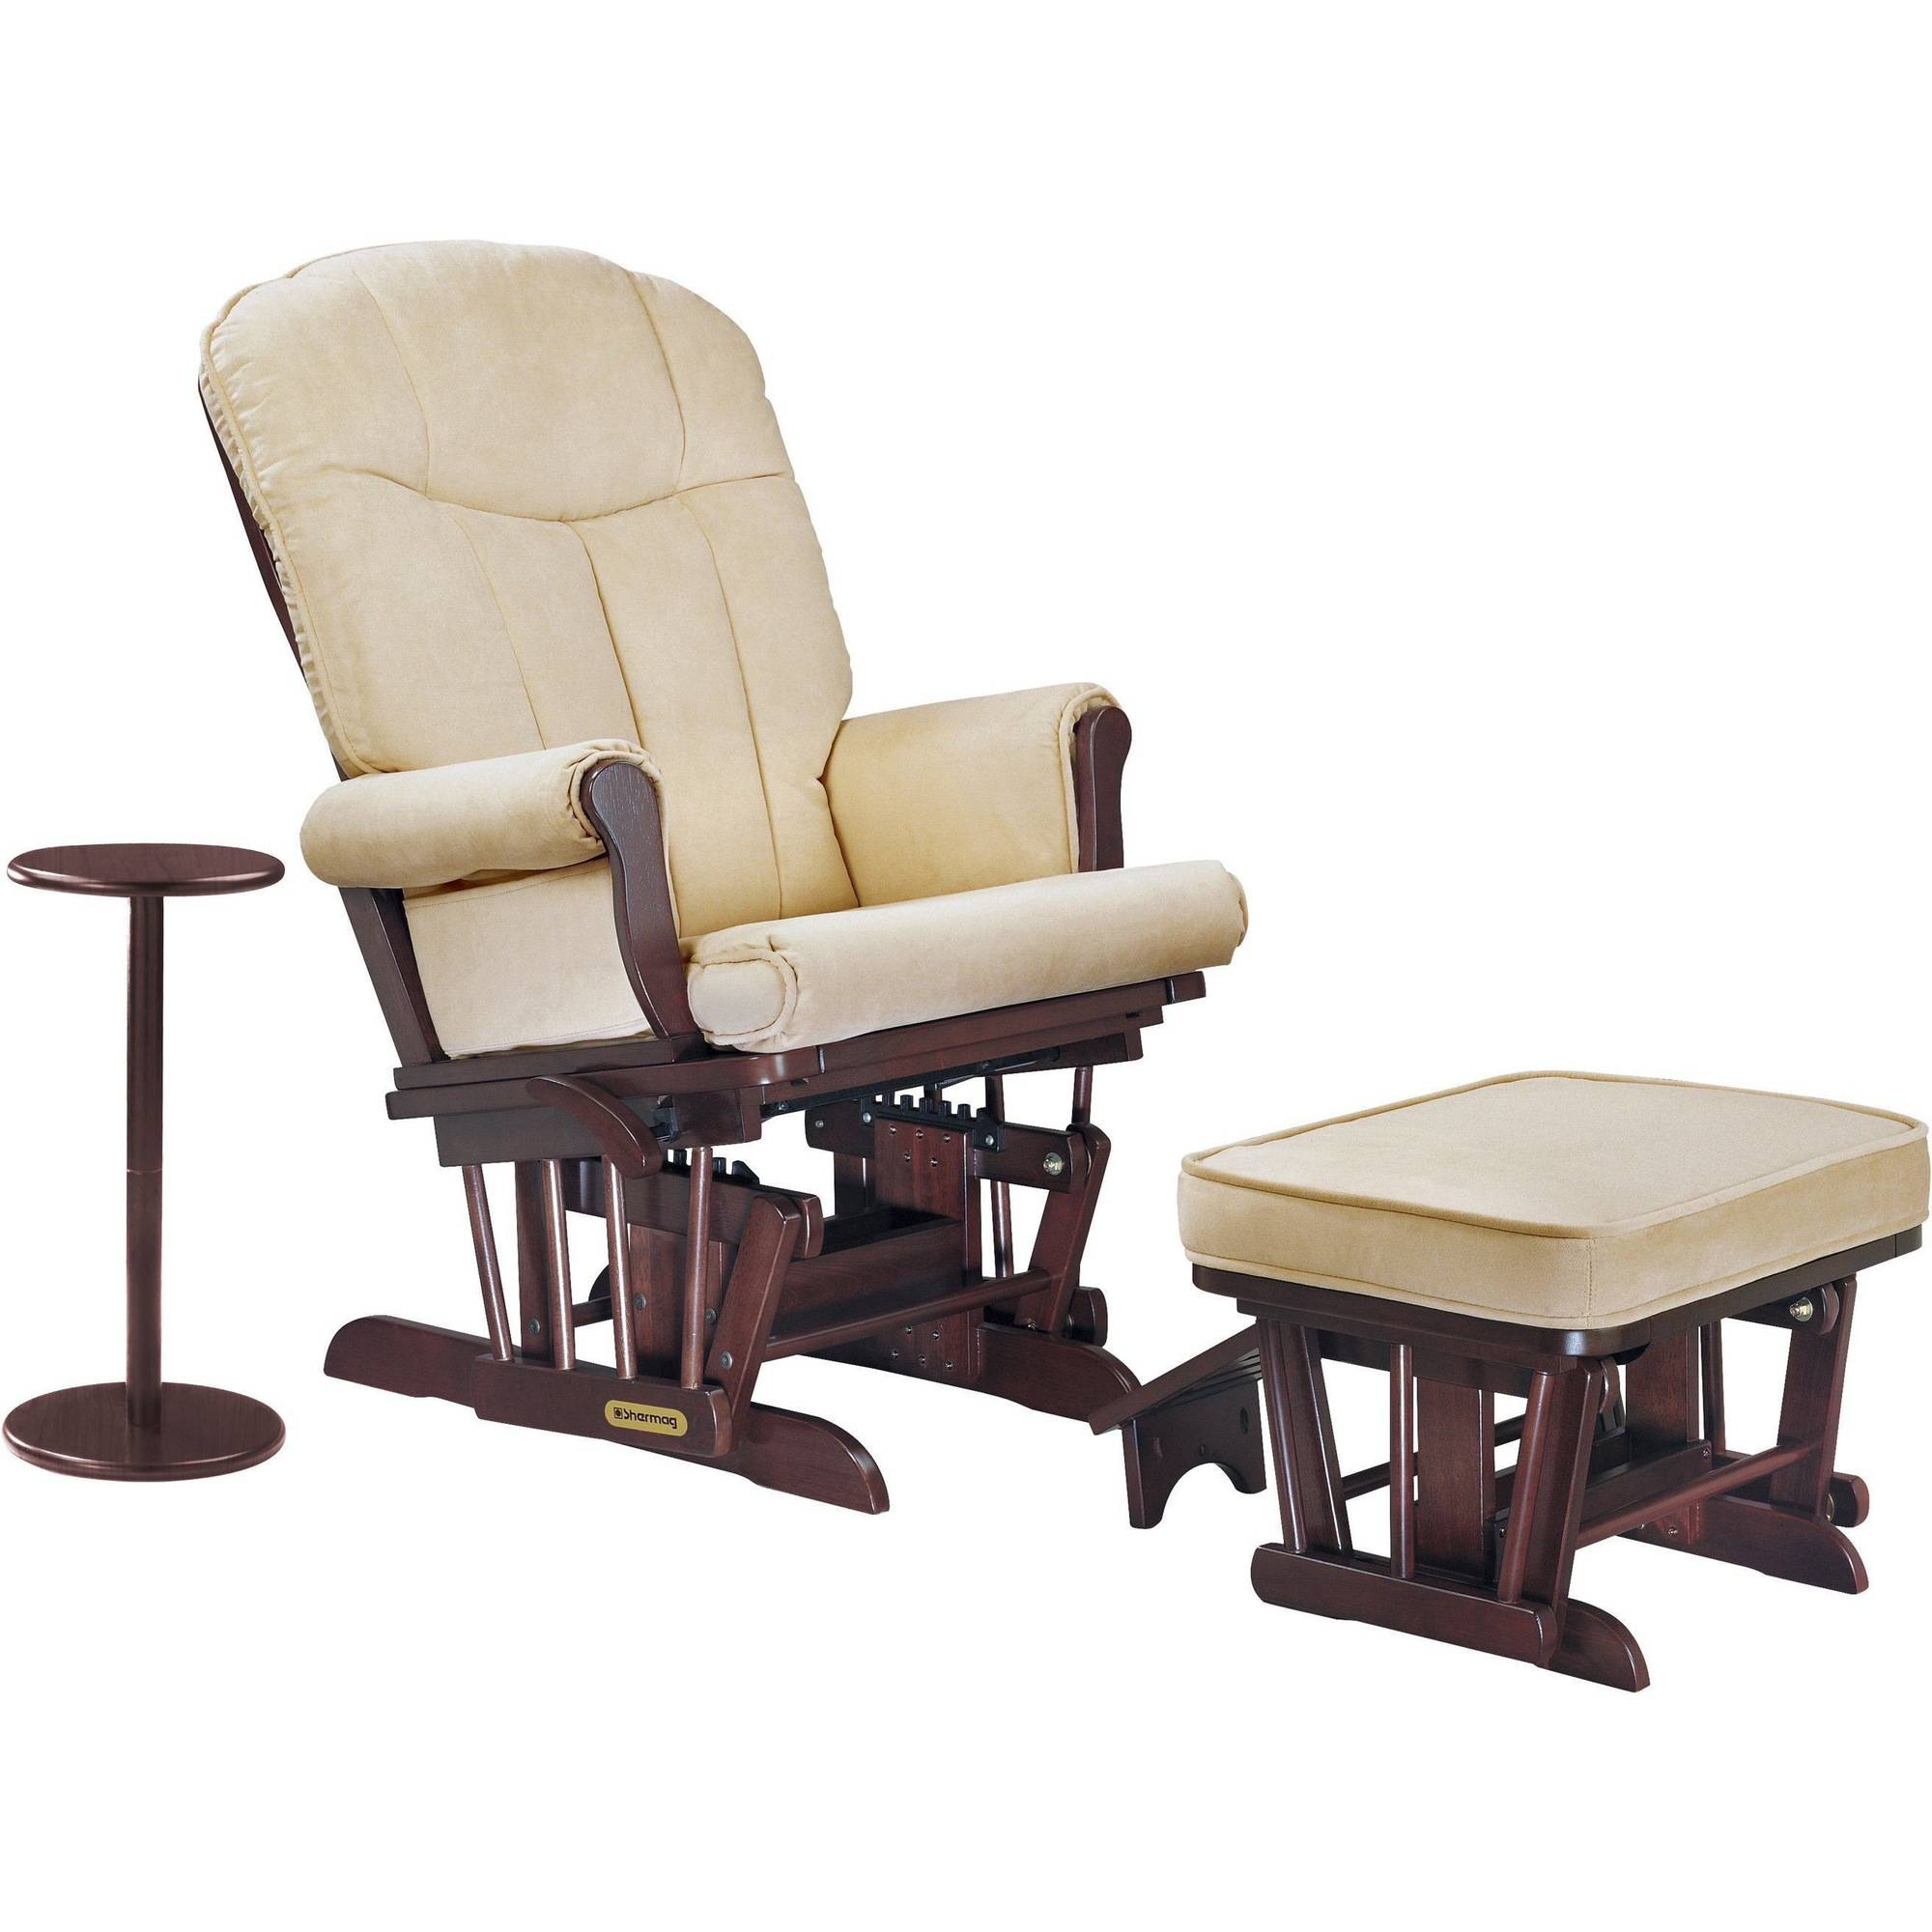 Push Back Recliner Glider Rocker with Swivel and Brake. Includes FREE Ottoman with Brown Micro-Fiber Fabric. - Walmart.com  sc 1 st  Walmart & Push Back Recliner Glider Rocker with Swivel and Brake. Includes ... islam-shia.org